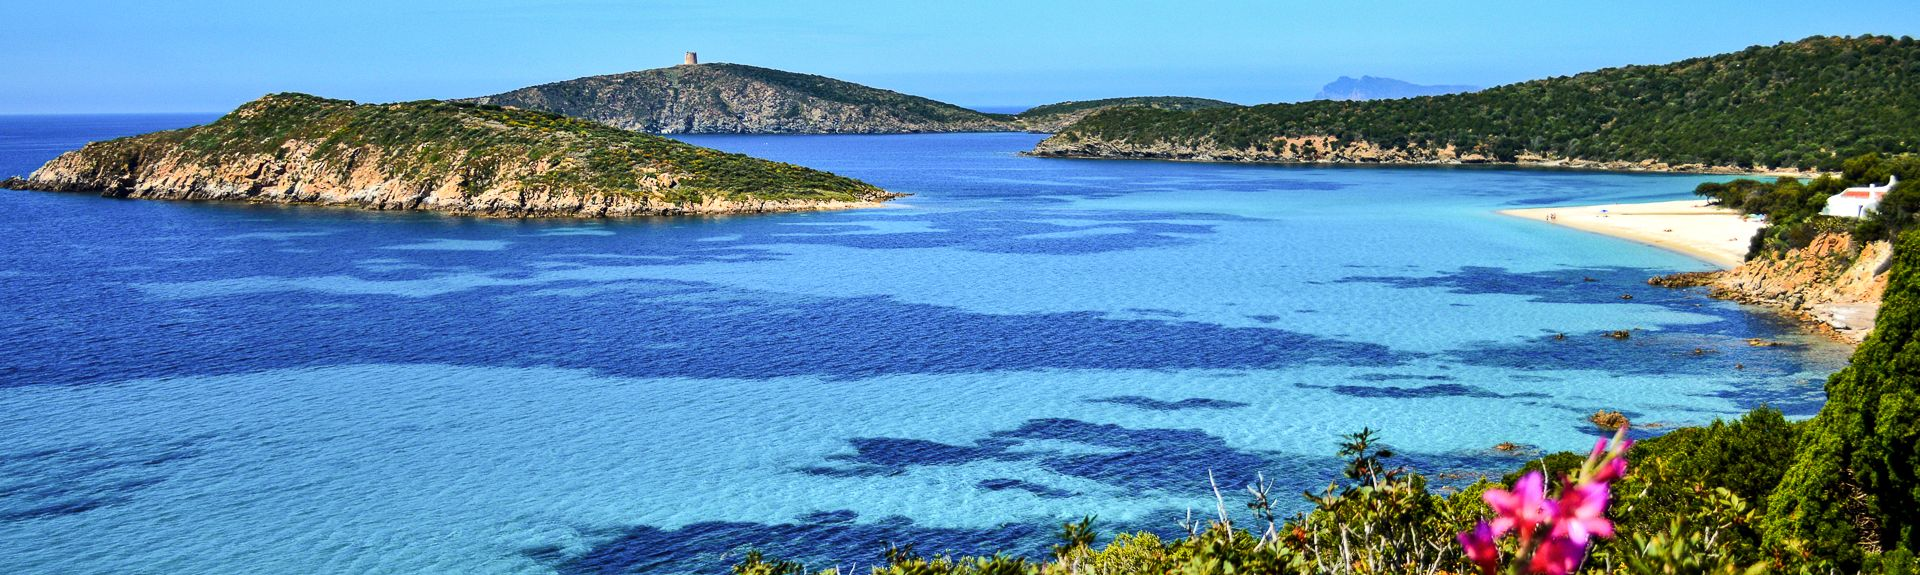 Porto Pinetto, South Sardinia, Sardinia, Italy